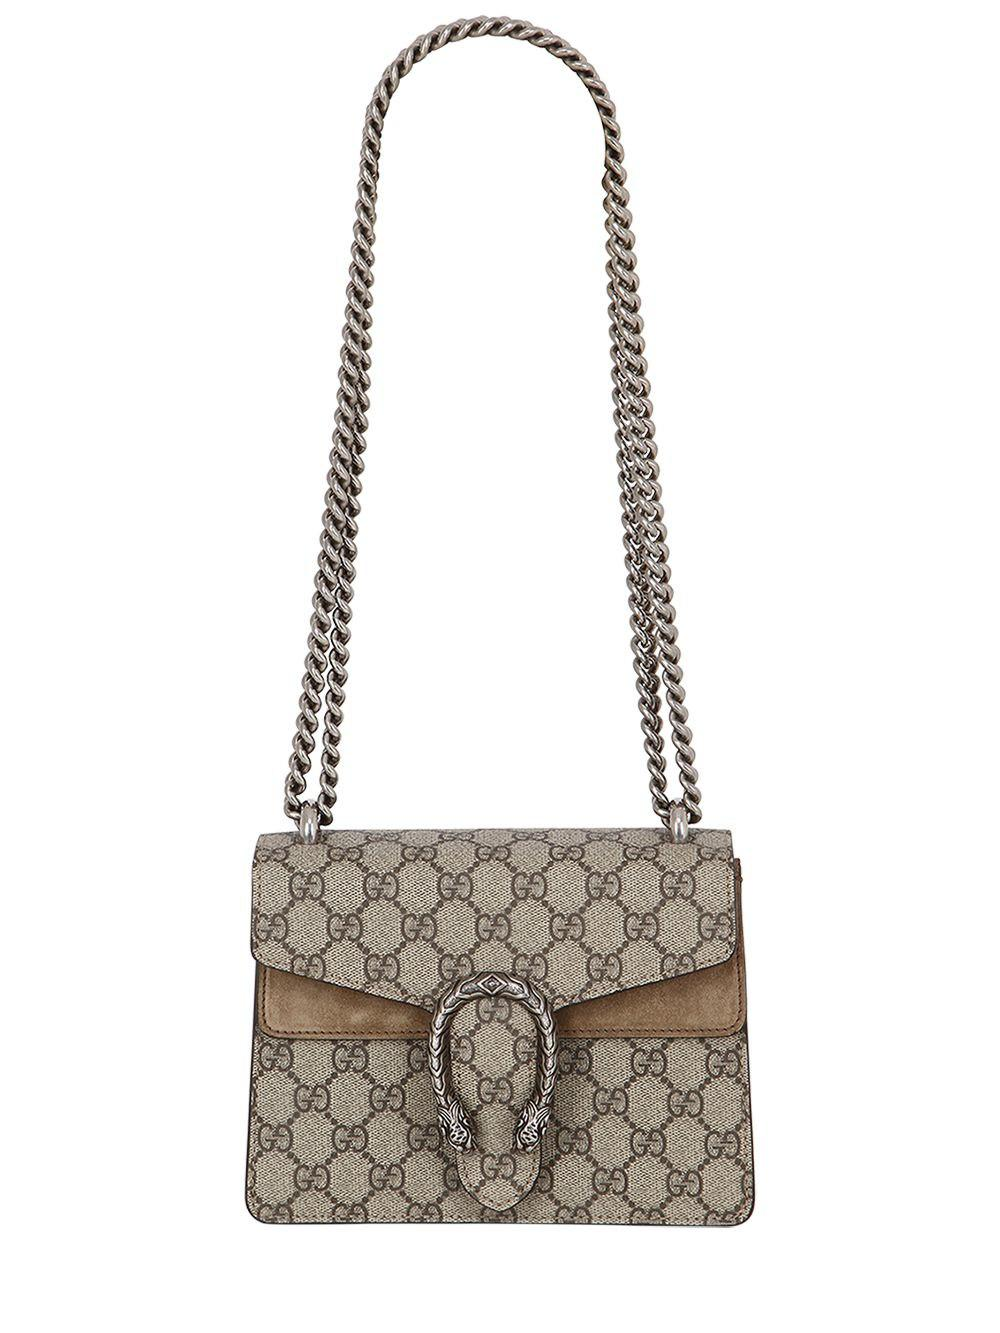 9ace9876ab4 Gucci Mini Dionysus Gg Supreme Shoulder Bag - Save 12.06896551724138% - Lyst